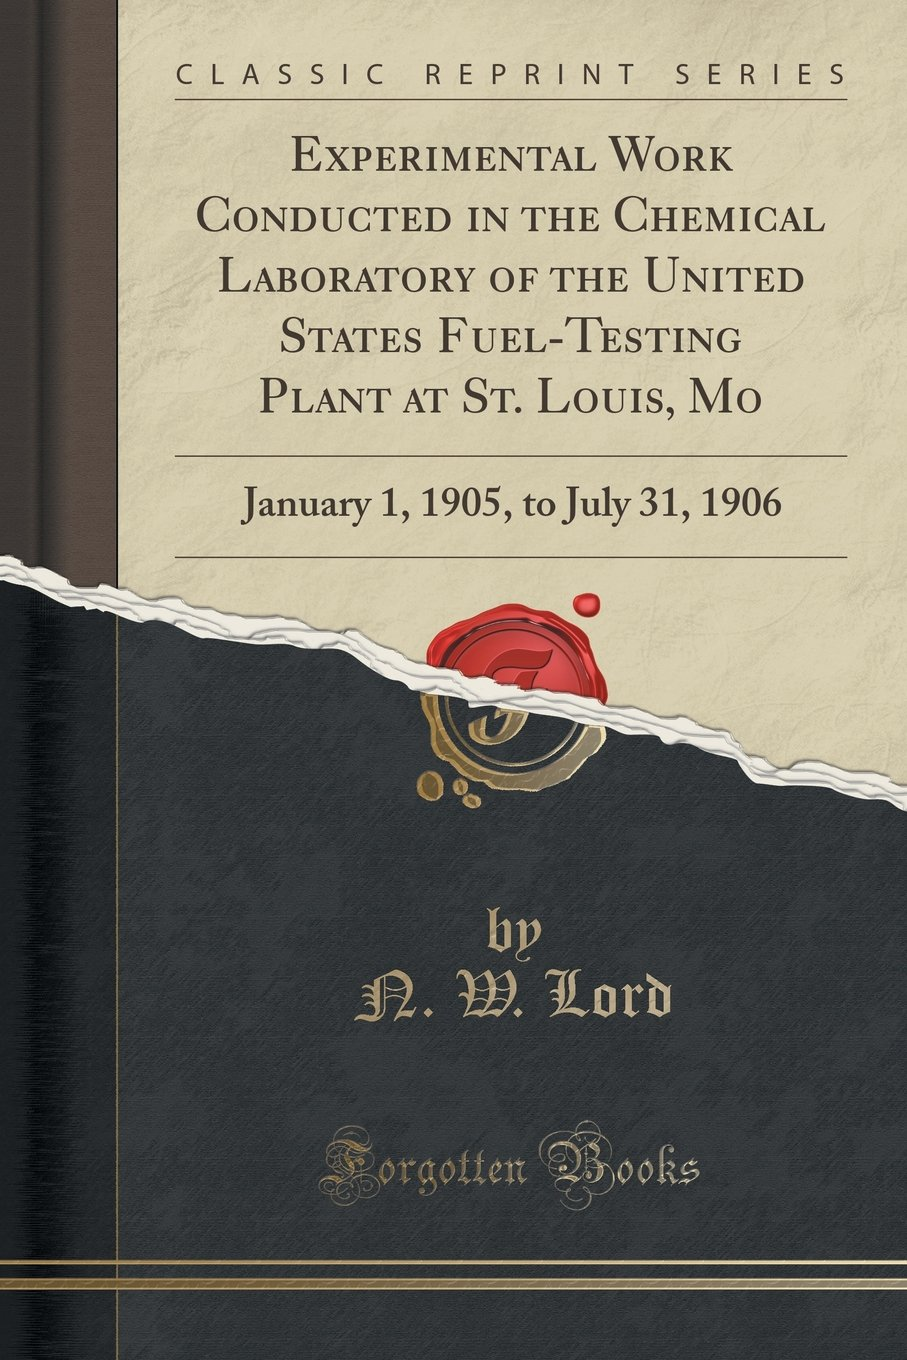 Read Online Experimental Work Conducted in the Chemical Laboratory of the United States Fuel-Testing Plant at St. Louis, Mo: January 1, 1905, to July 31, 1906 (Classic Reprint) PDF